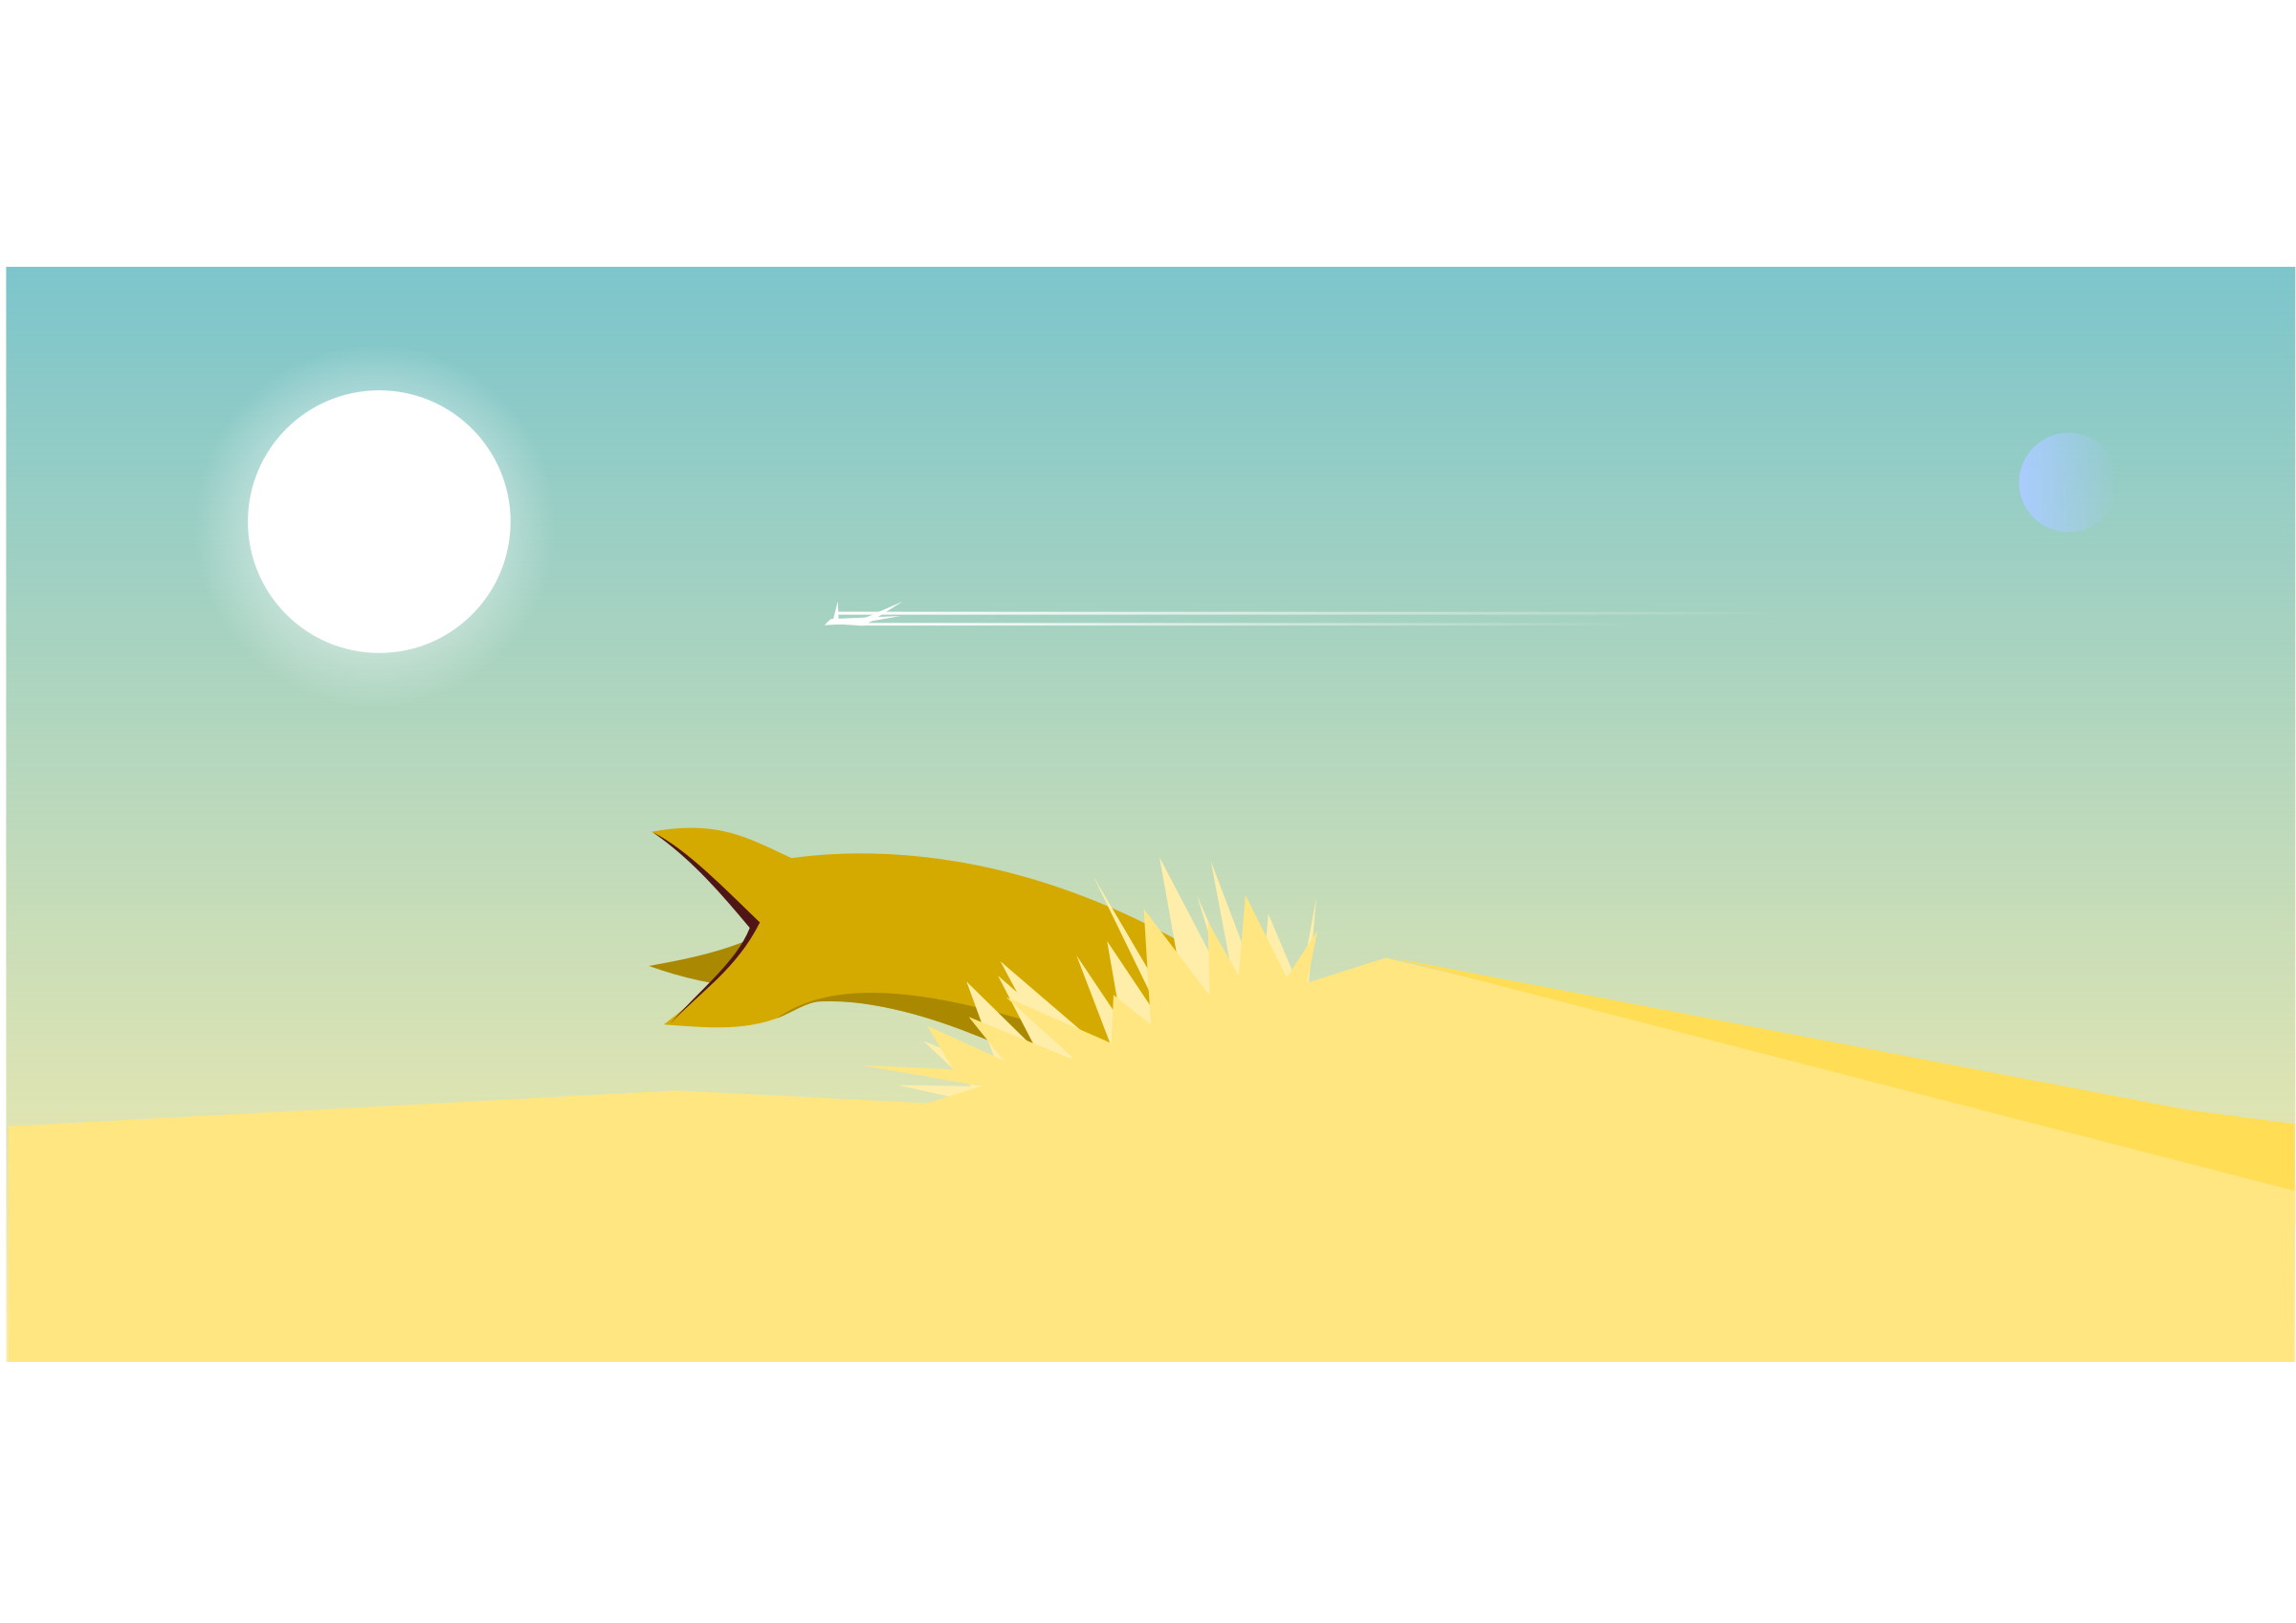 Dune clipart #3, Download drawings